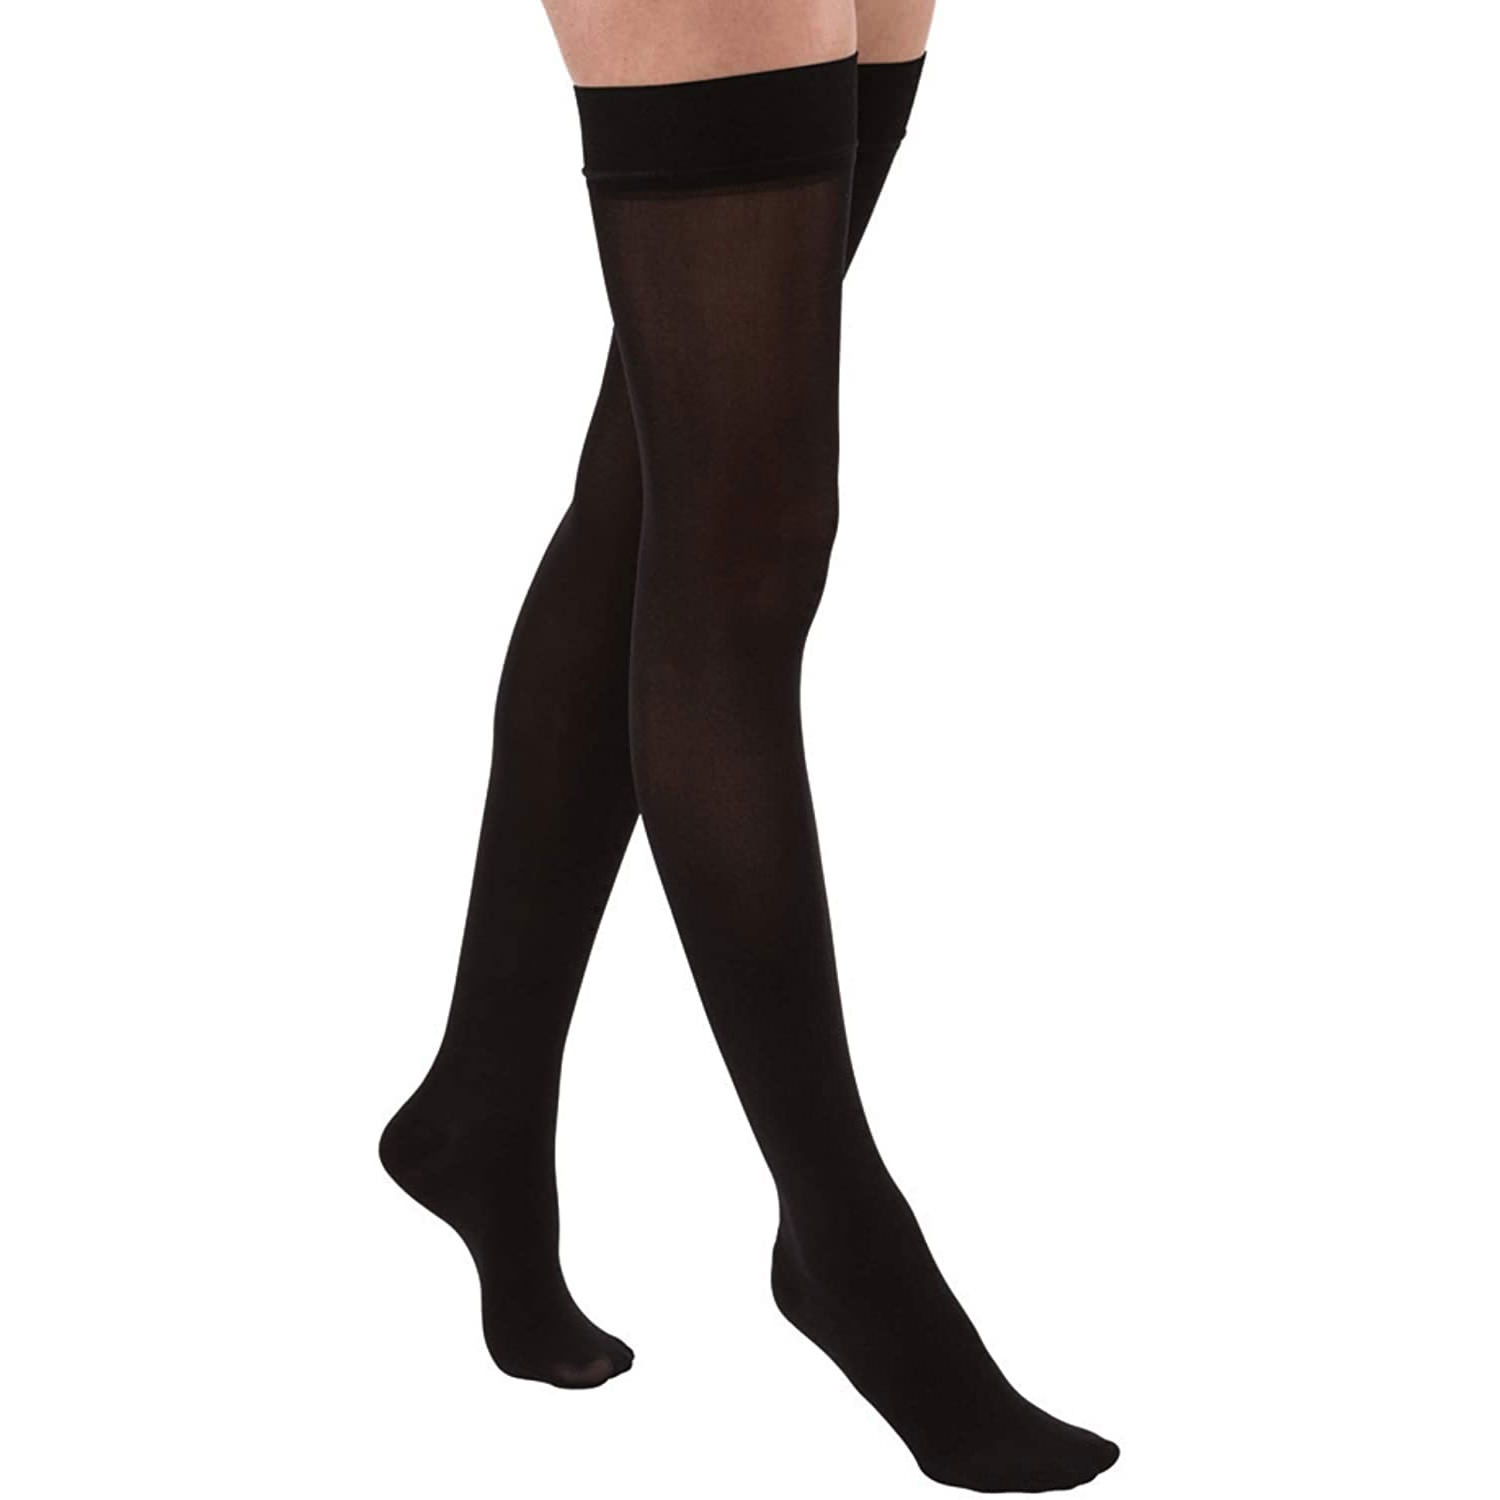 Jobst Relief Silicone Band Compression Stocking